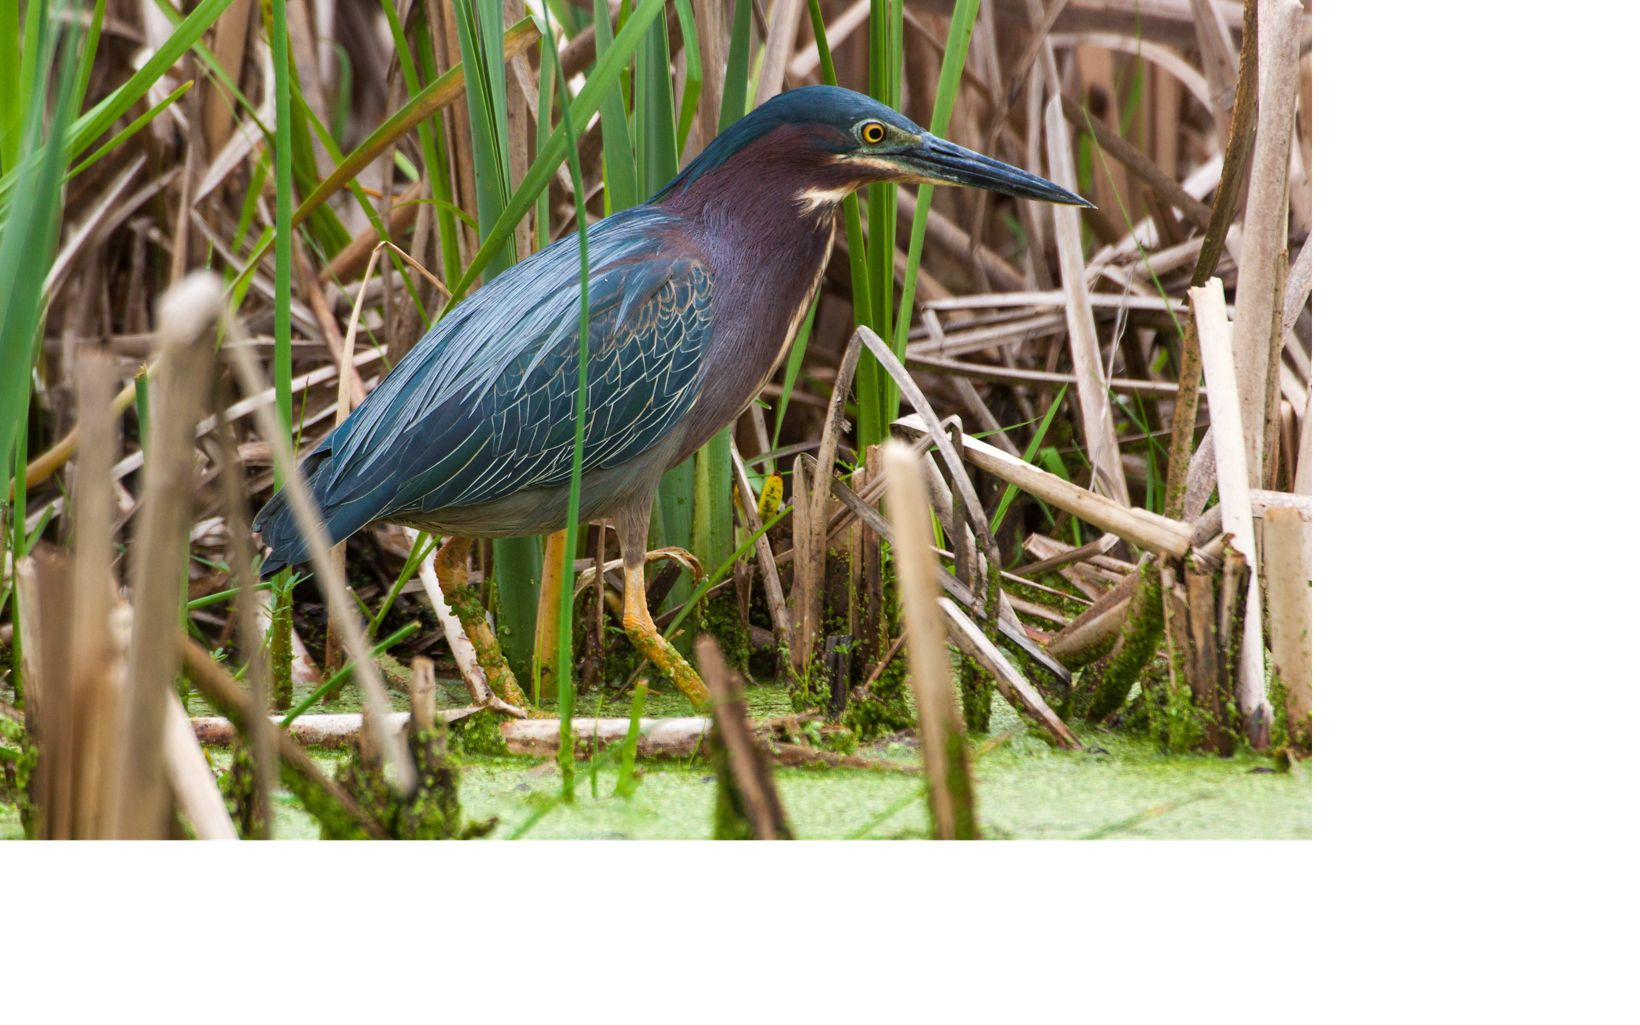 These wading birds return to Wisconsin in the spring, and can be seen near the water's edge waiting for small fish or other prey.